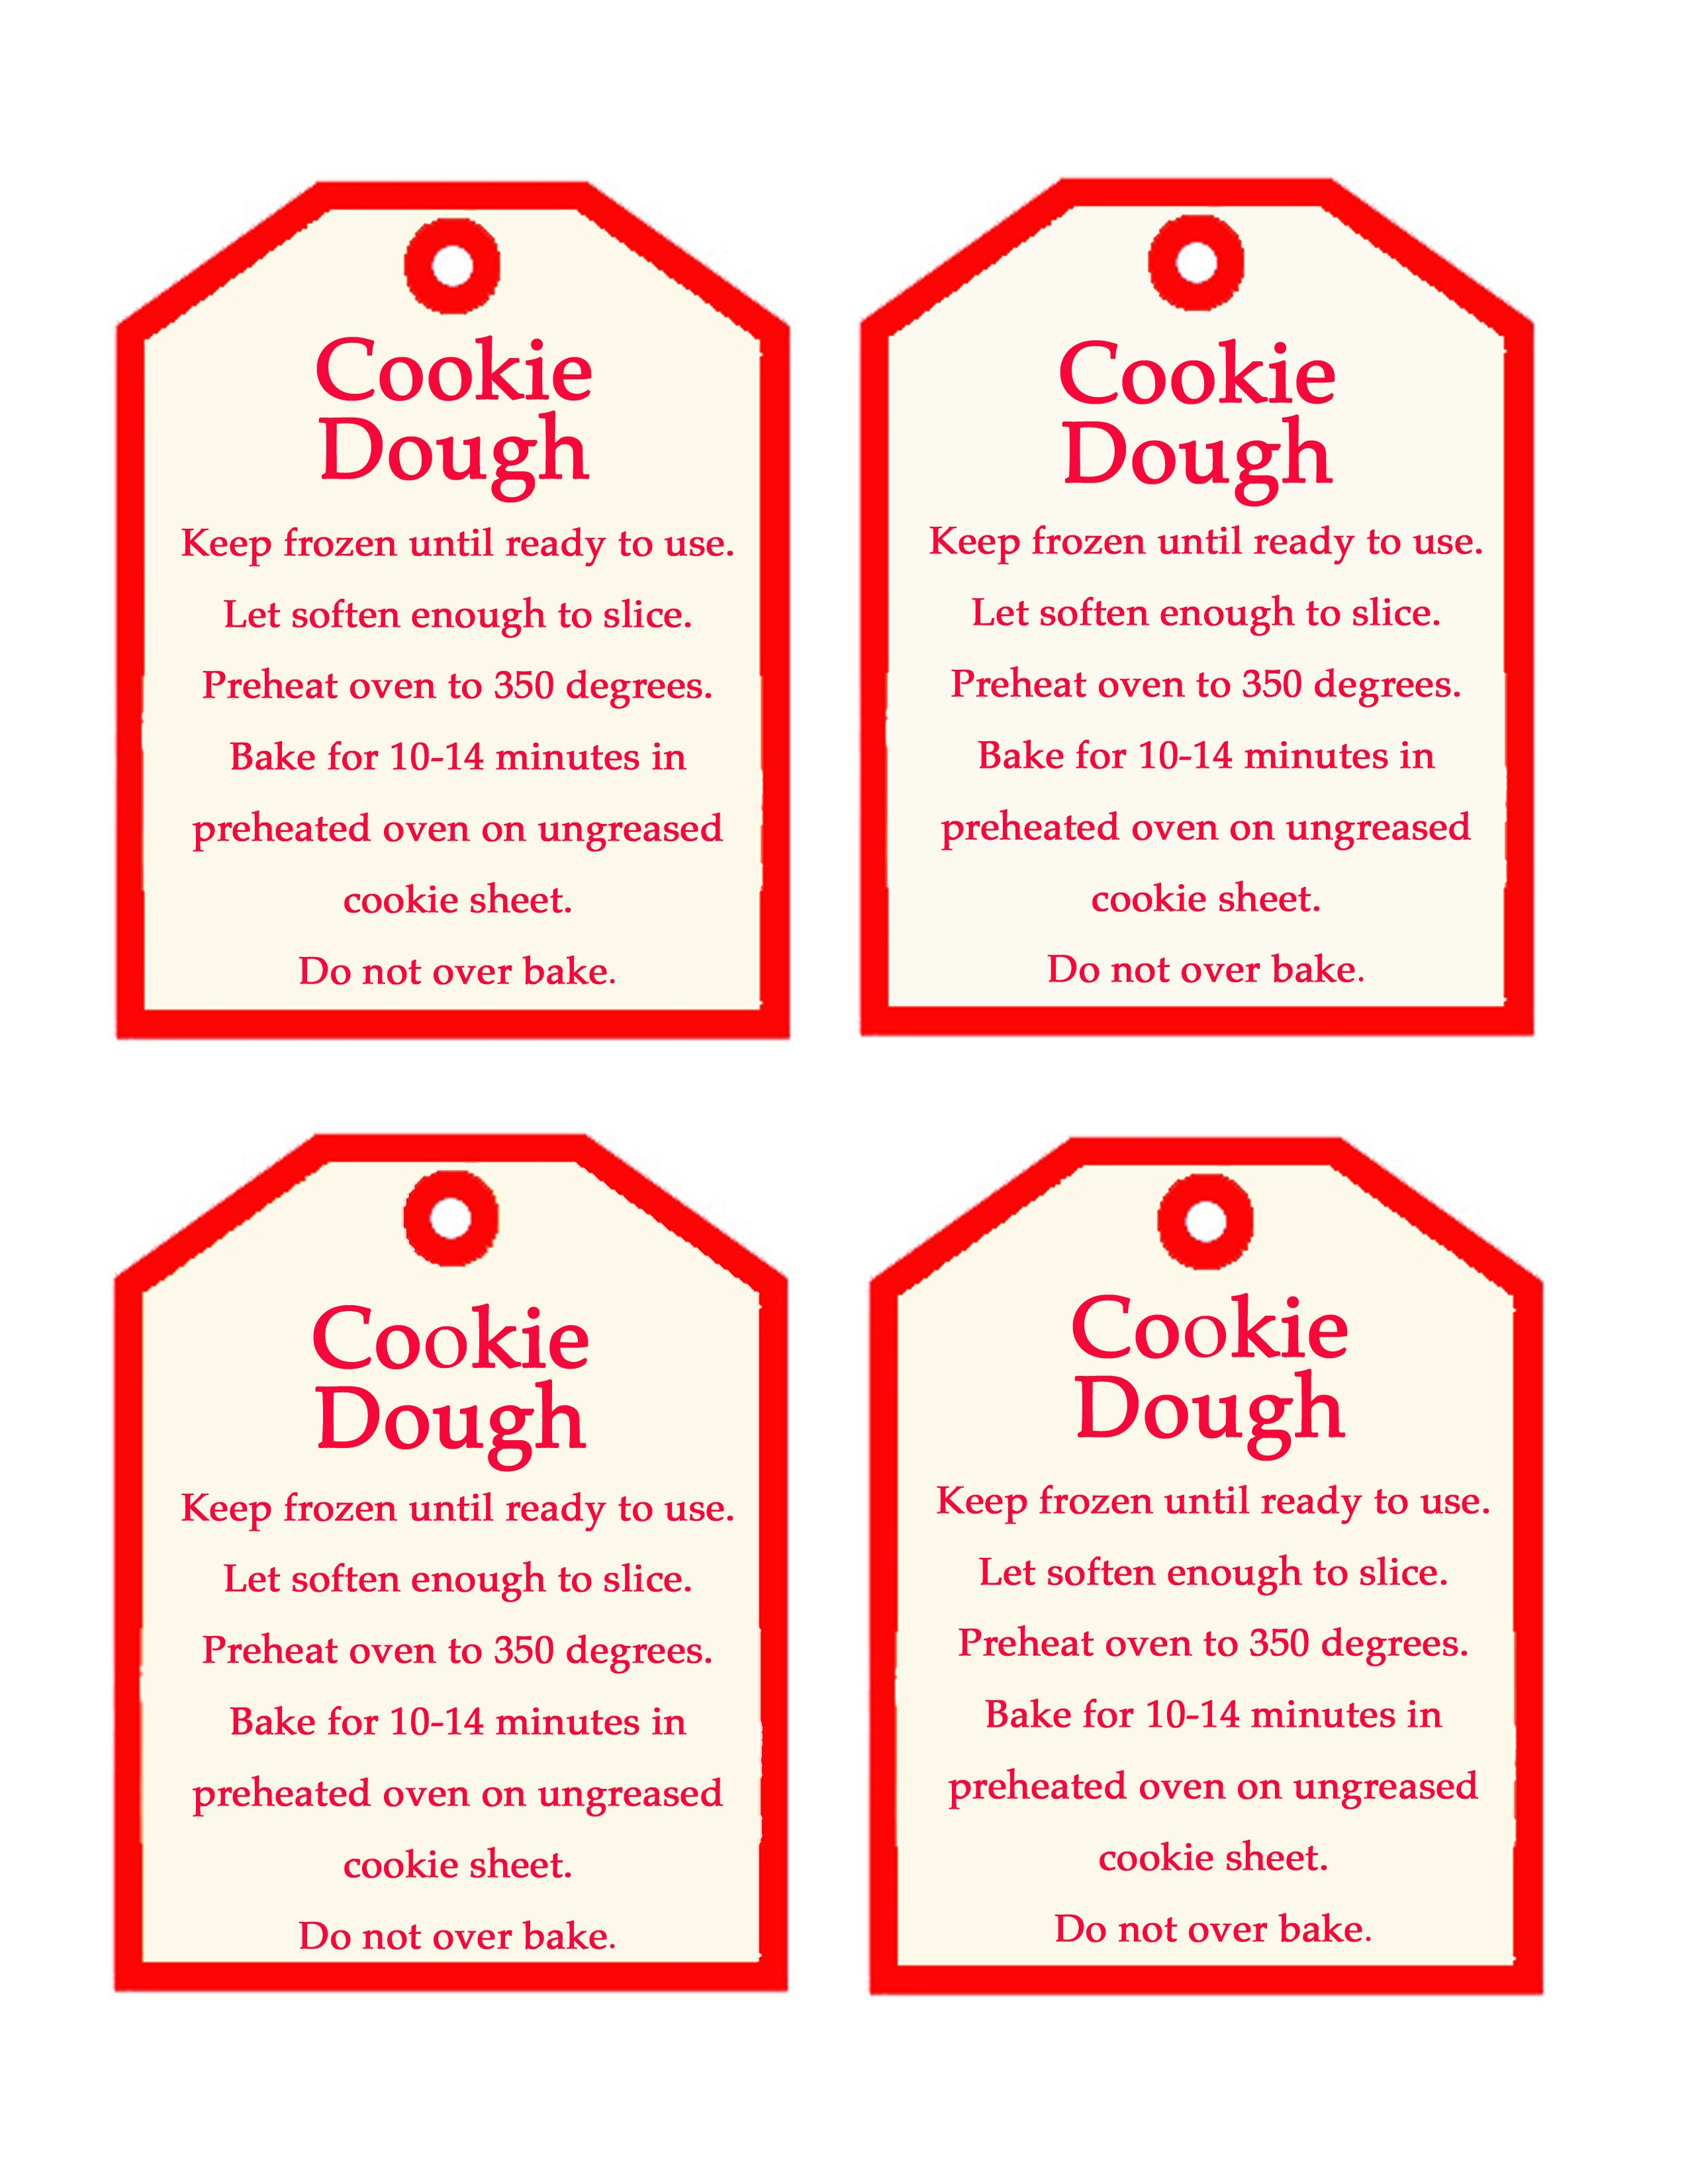 Christmas wonderful cookie dough gift printable design dazzle make cookie dough to give as a christmas gift free cookie dough printable design negle Choice Image